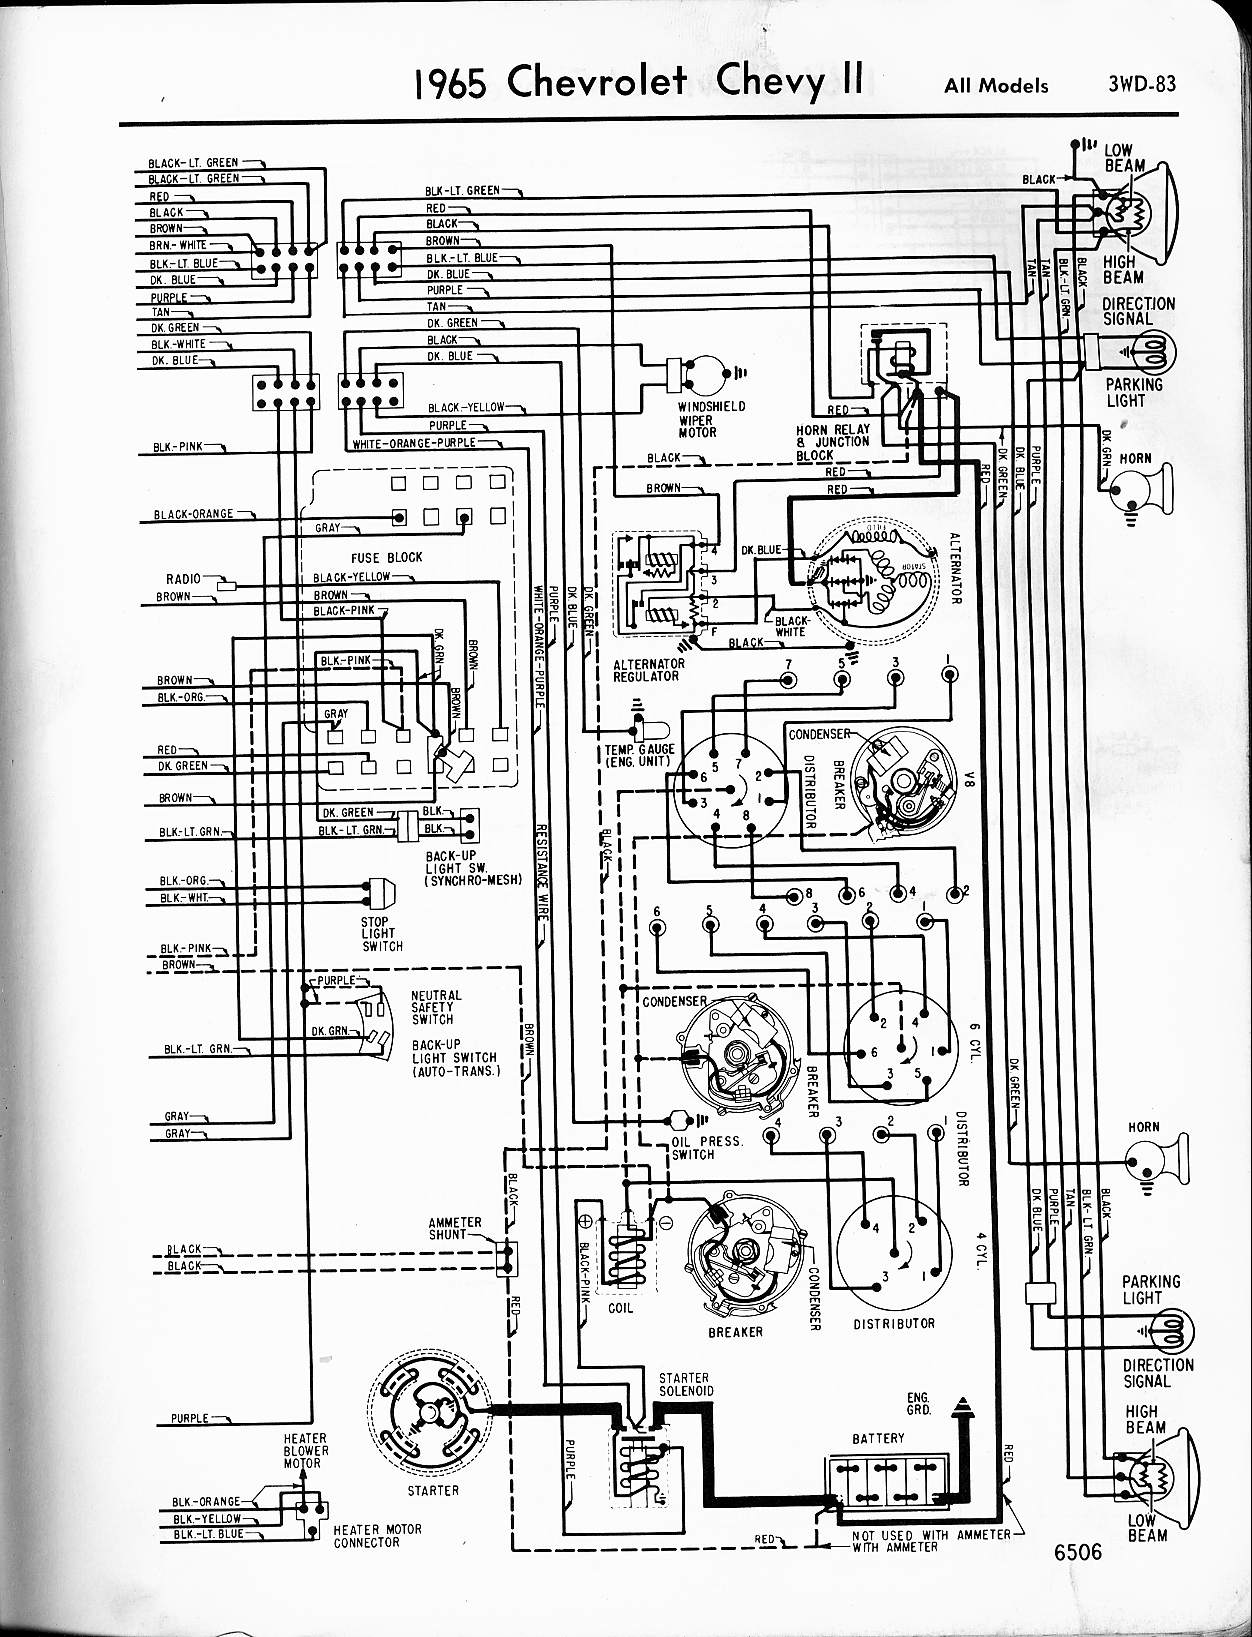 1968 Cadillac Wiring Schematics Electrical Diagram Free Gmc 72 House Symbols Turn Signal Diy Enthusiasts 1965 Directional Switch